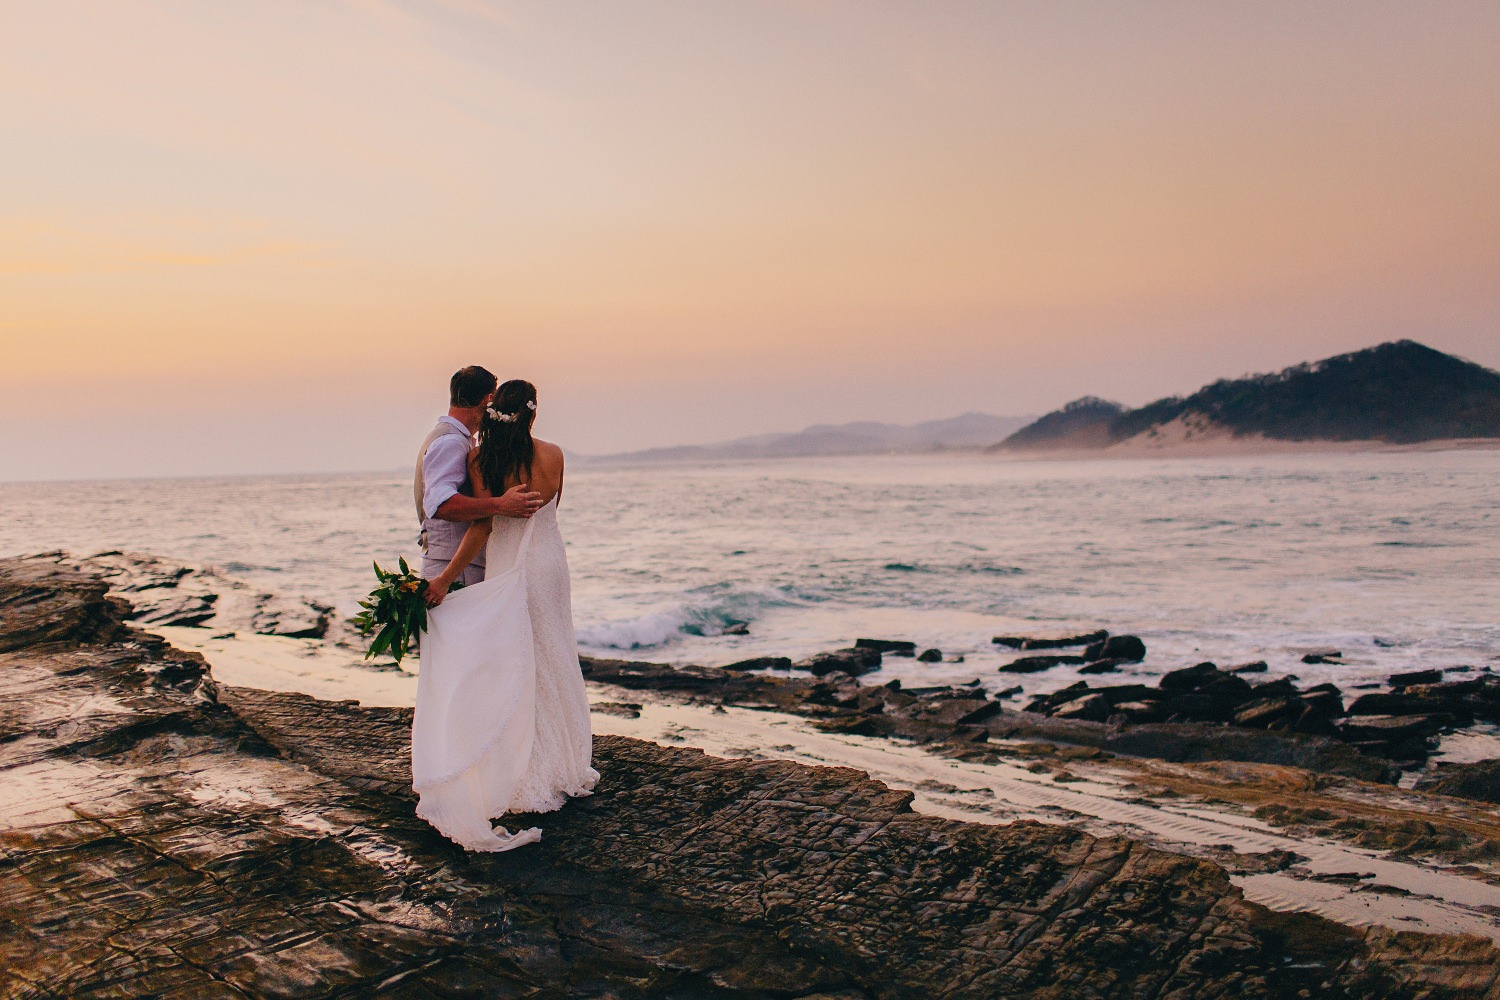 Looking towards the horizon. Nicaragua beach wedding photography